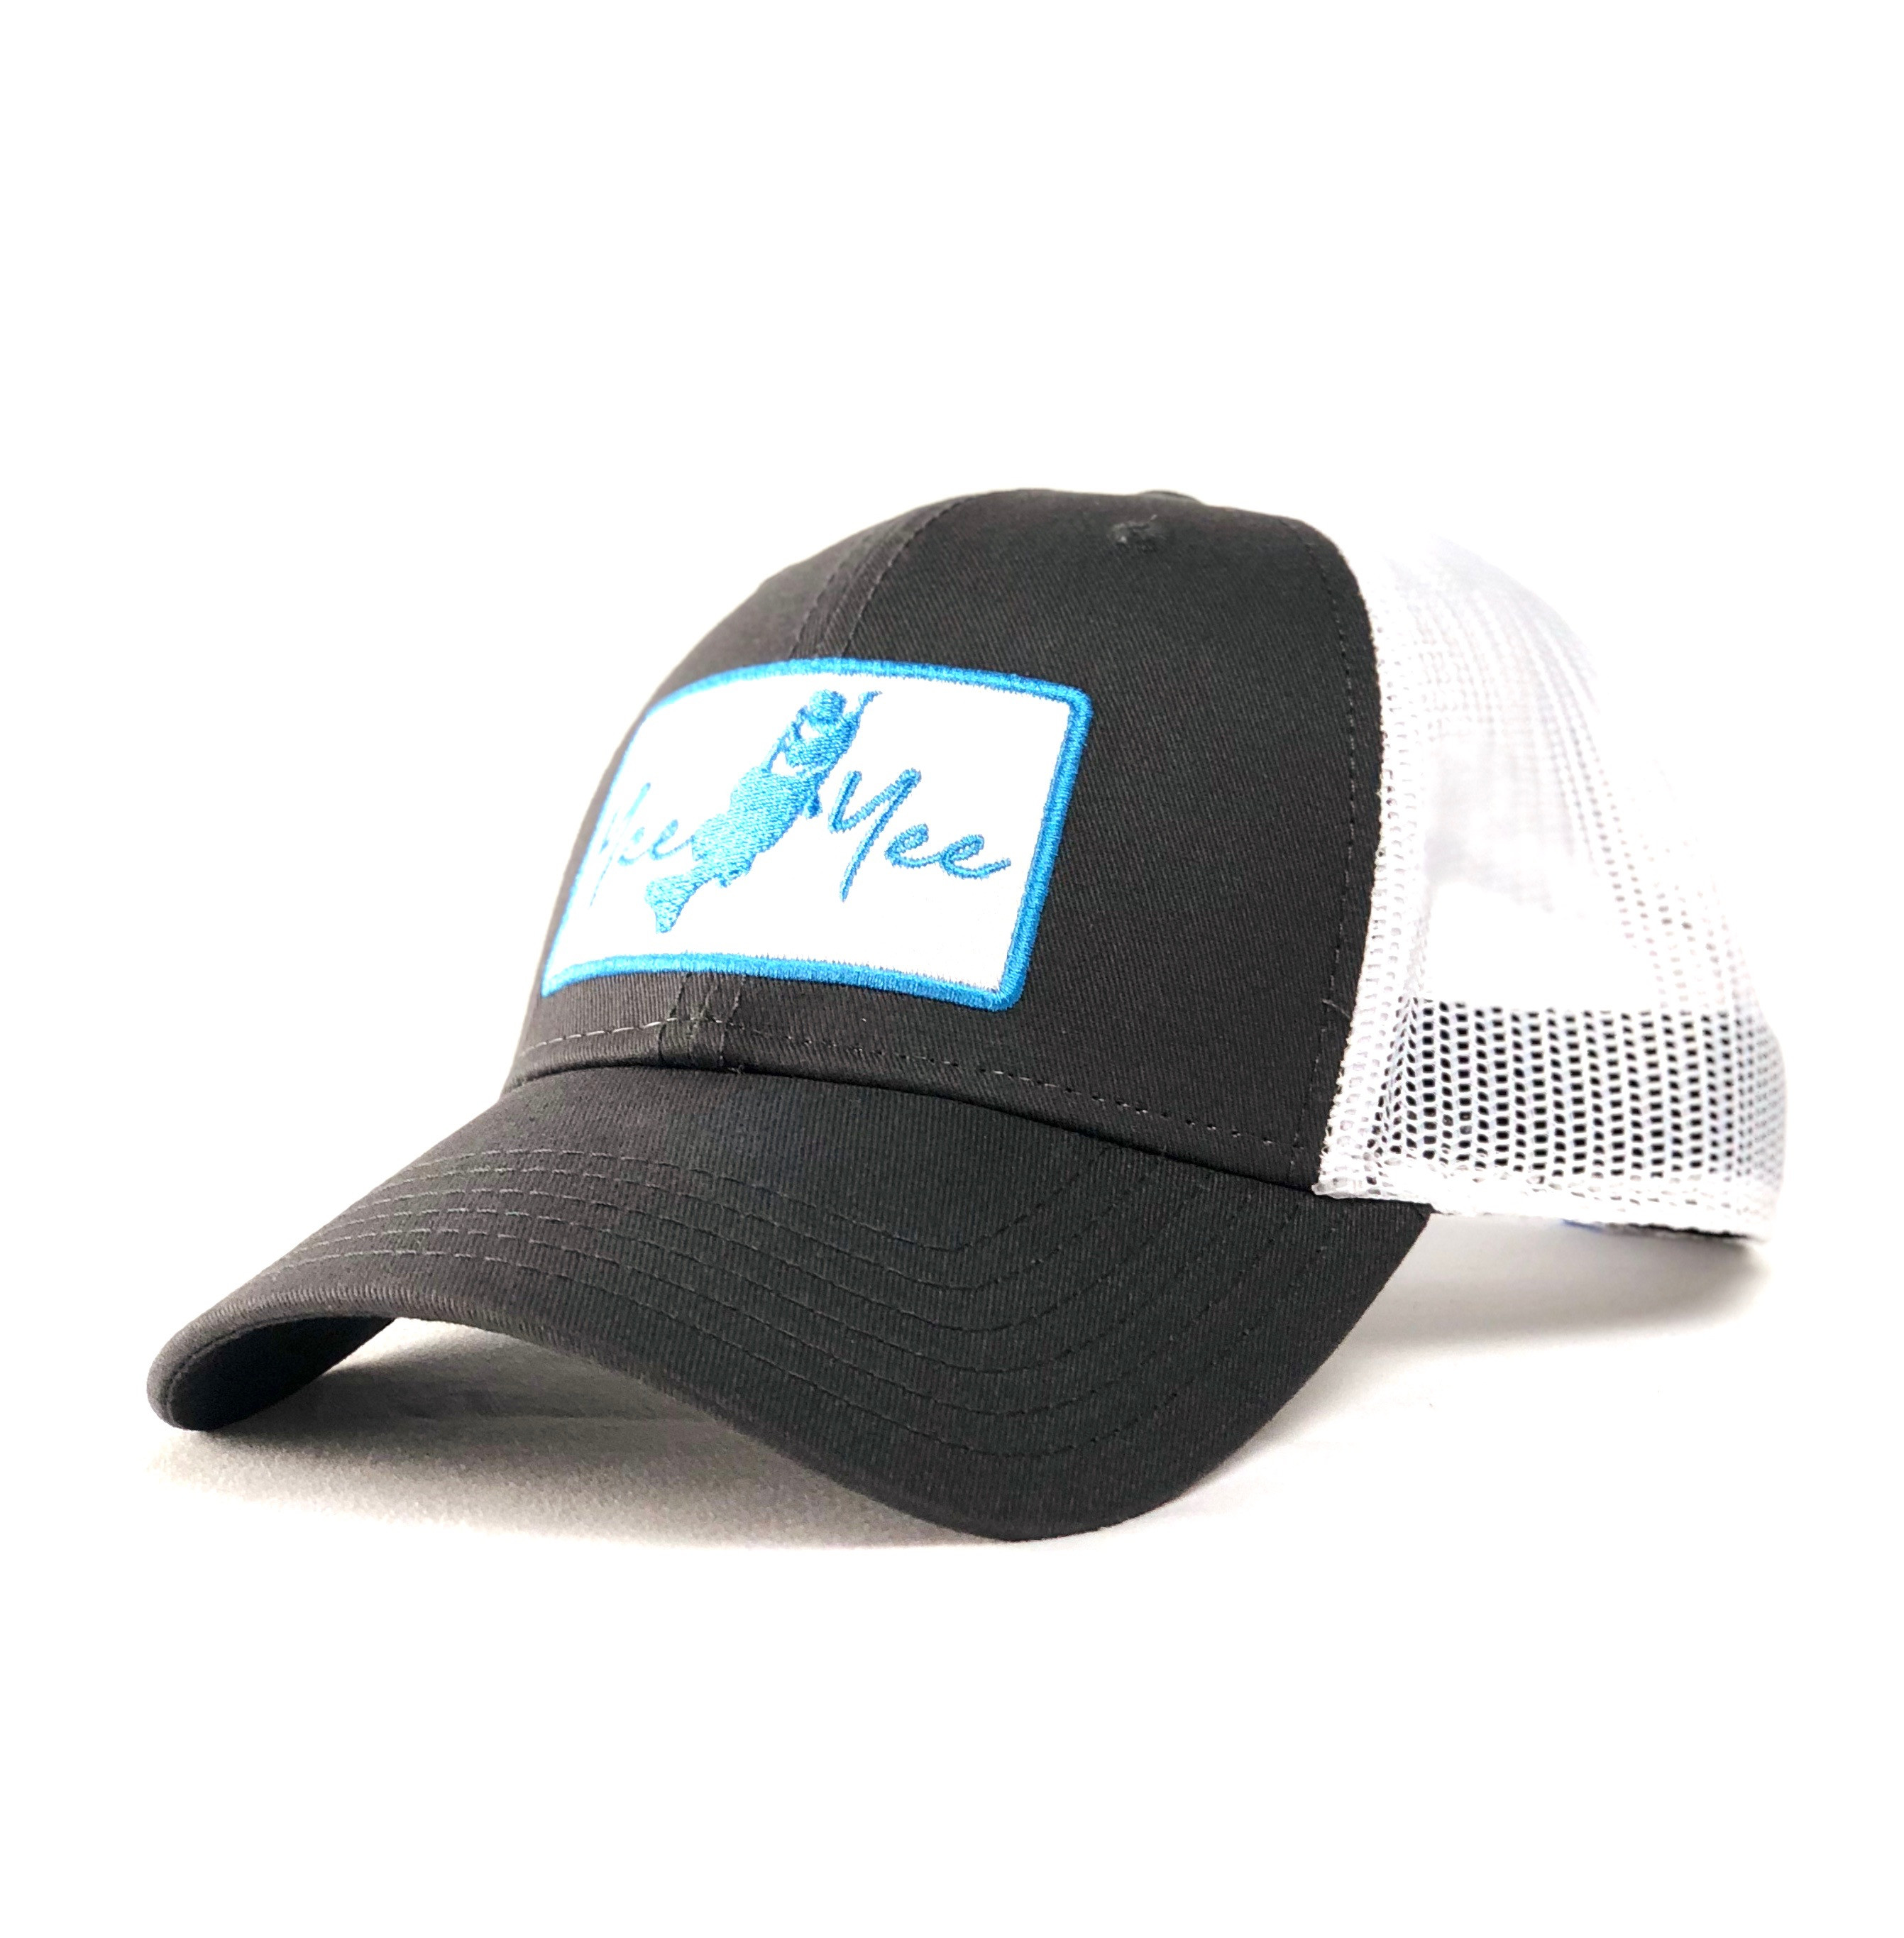 Charcoal/ Teal Bass Cap